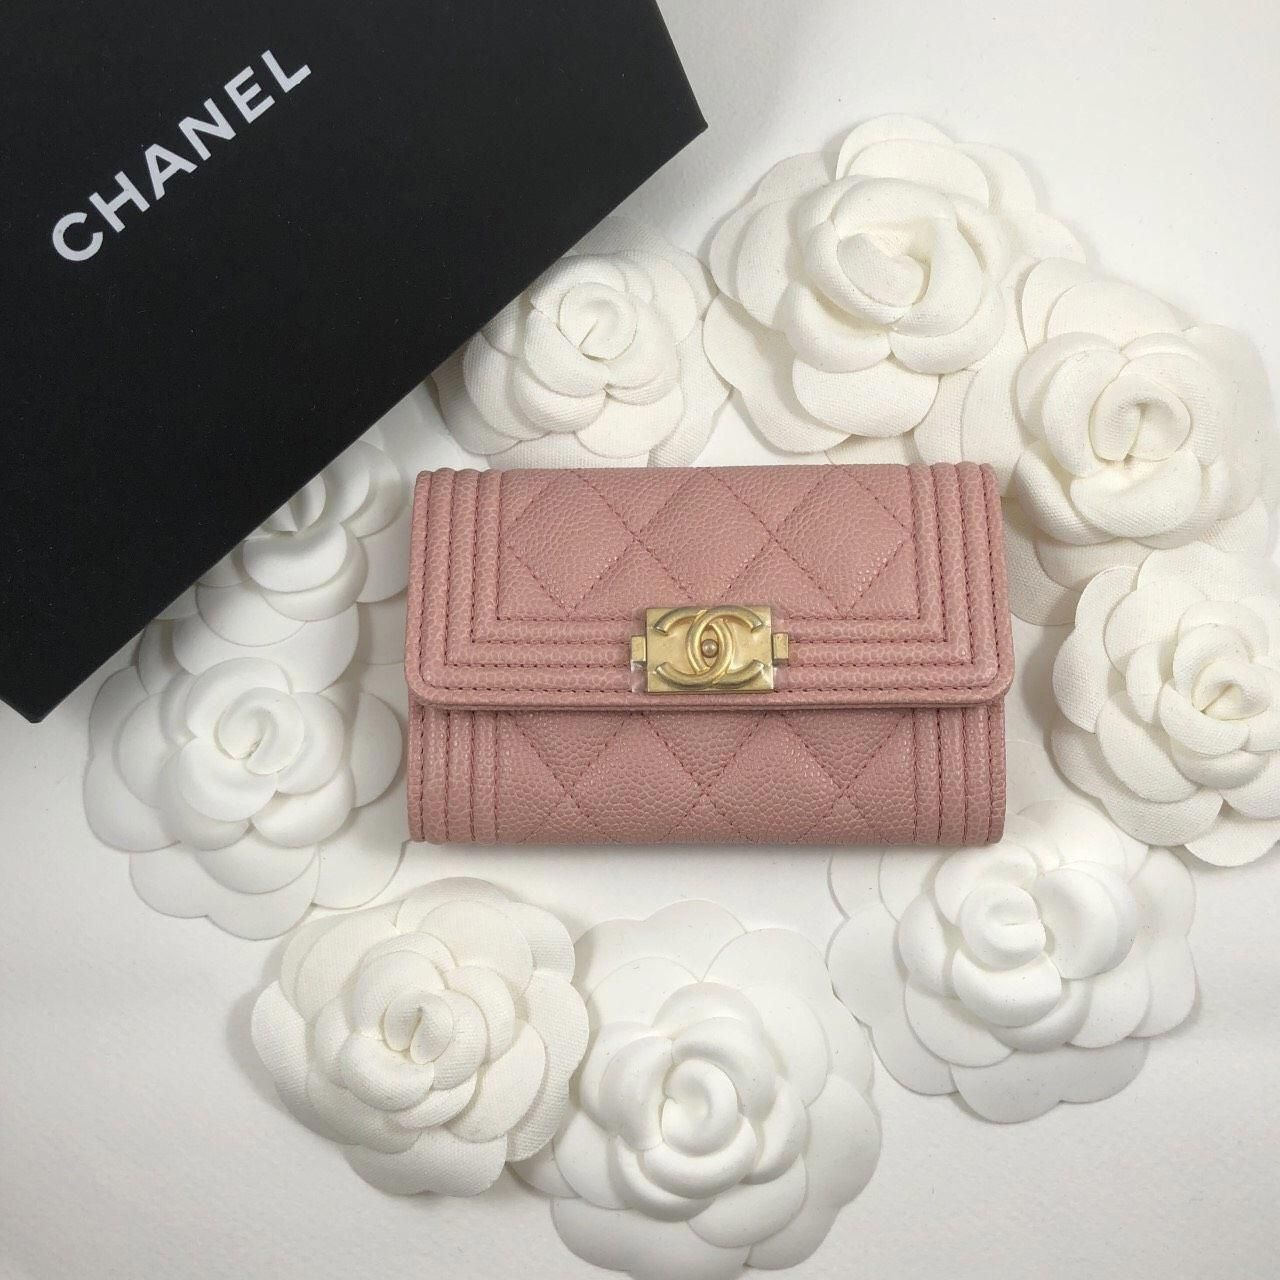 ca0579b1b5b9 Pink Chanel Boy Card Holder 😍 #Chanelhandbags | Chanel handbags in ...